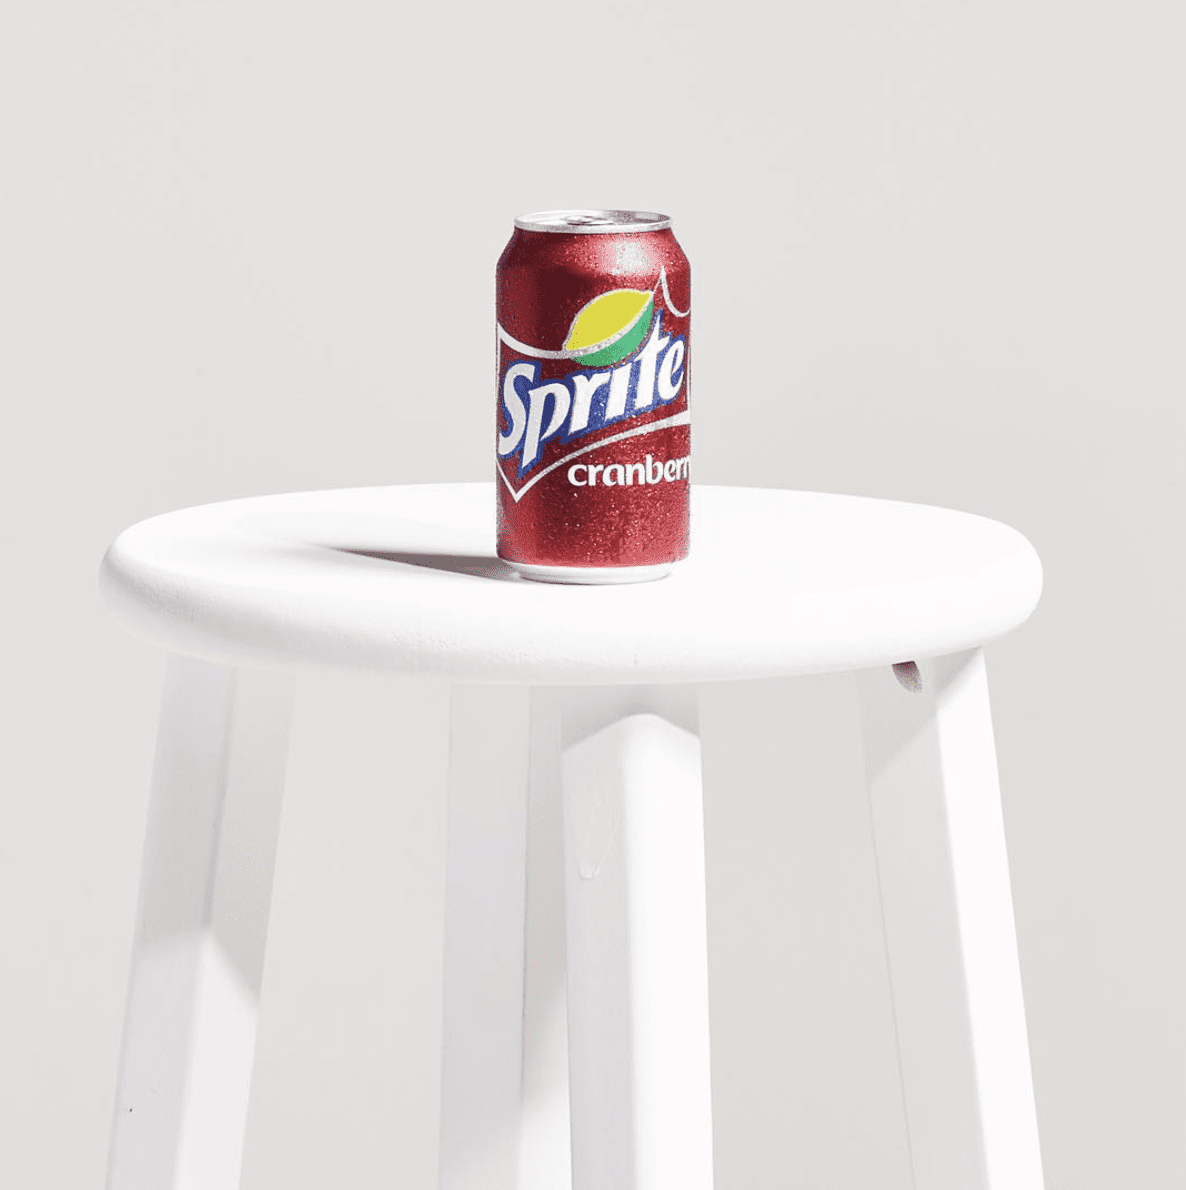 sprite cranberry can sitting on a stool | Tribu Digital Marketing